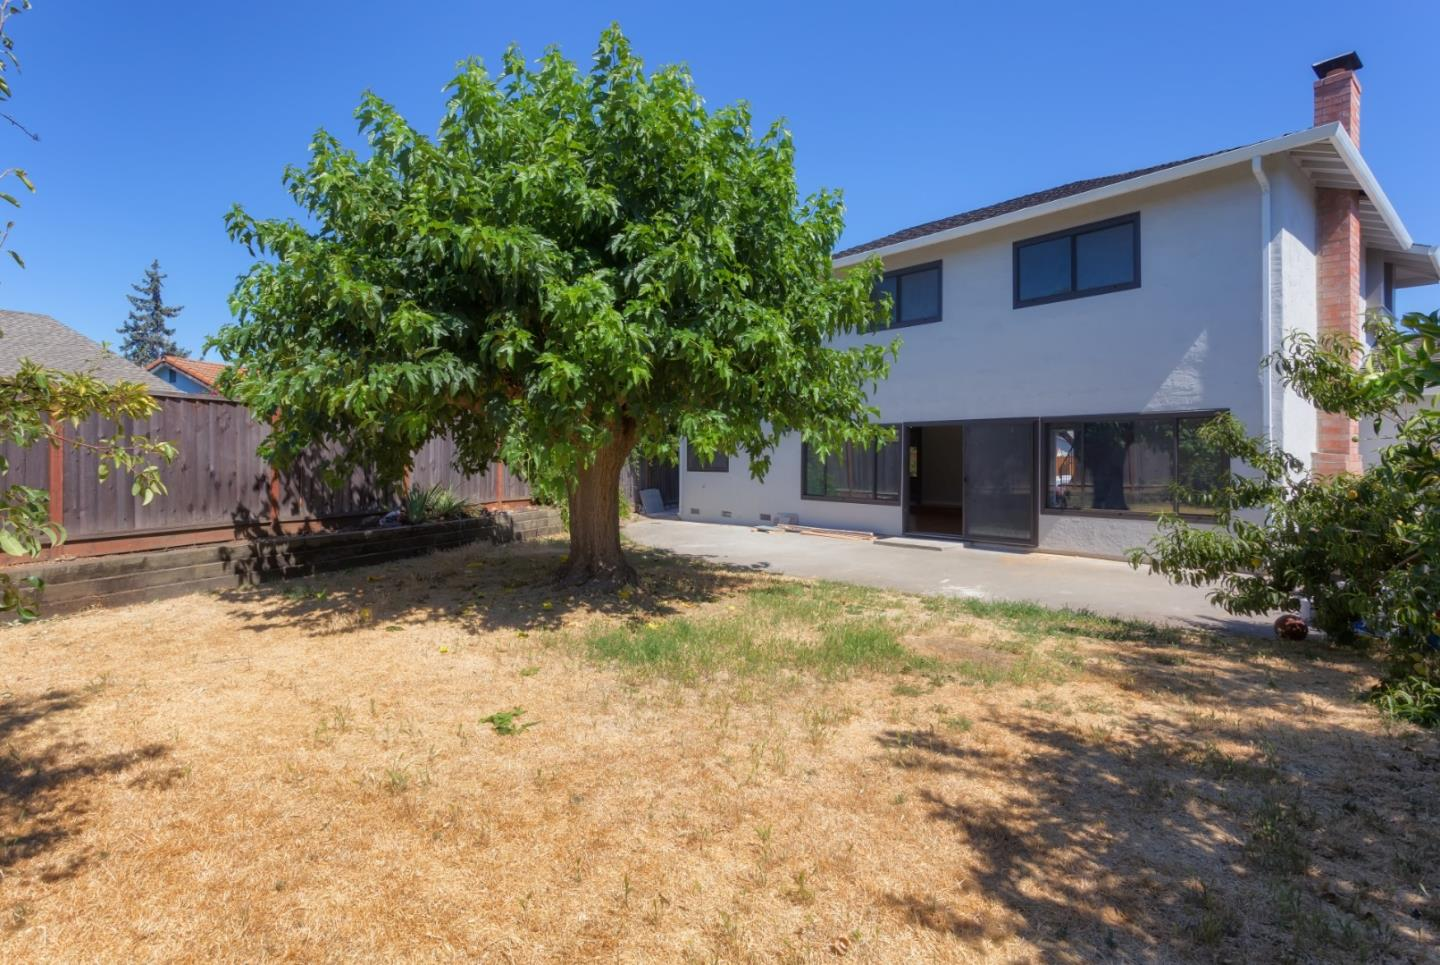 Additional photo for property listing at 5138 Severance Drive  San Jose, California 95136 United States